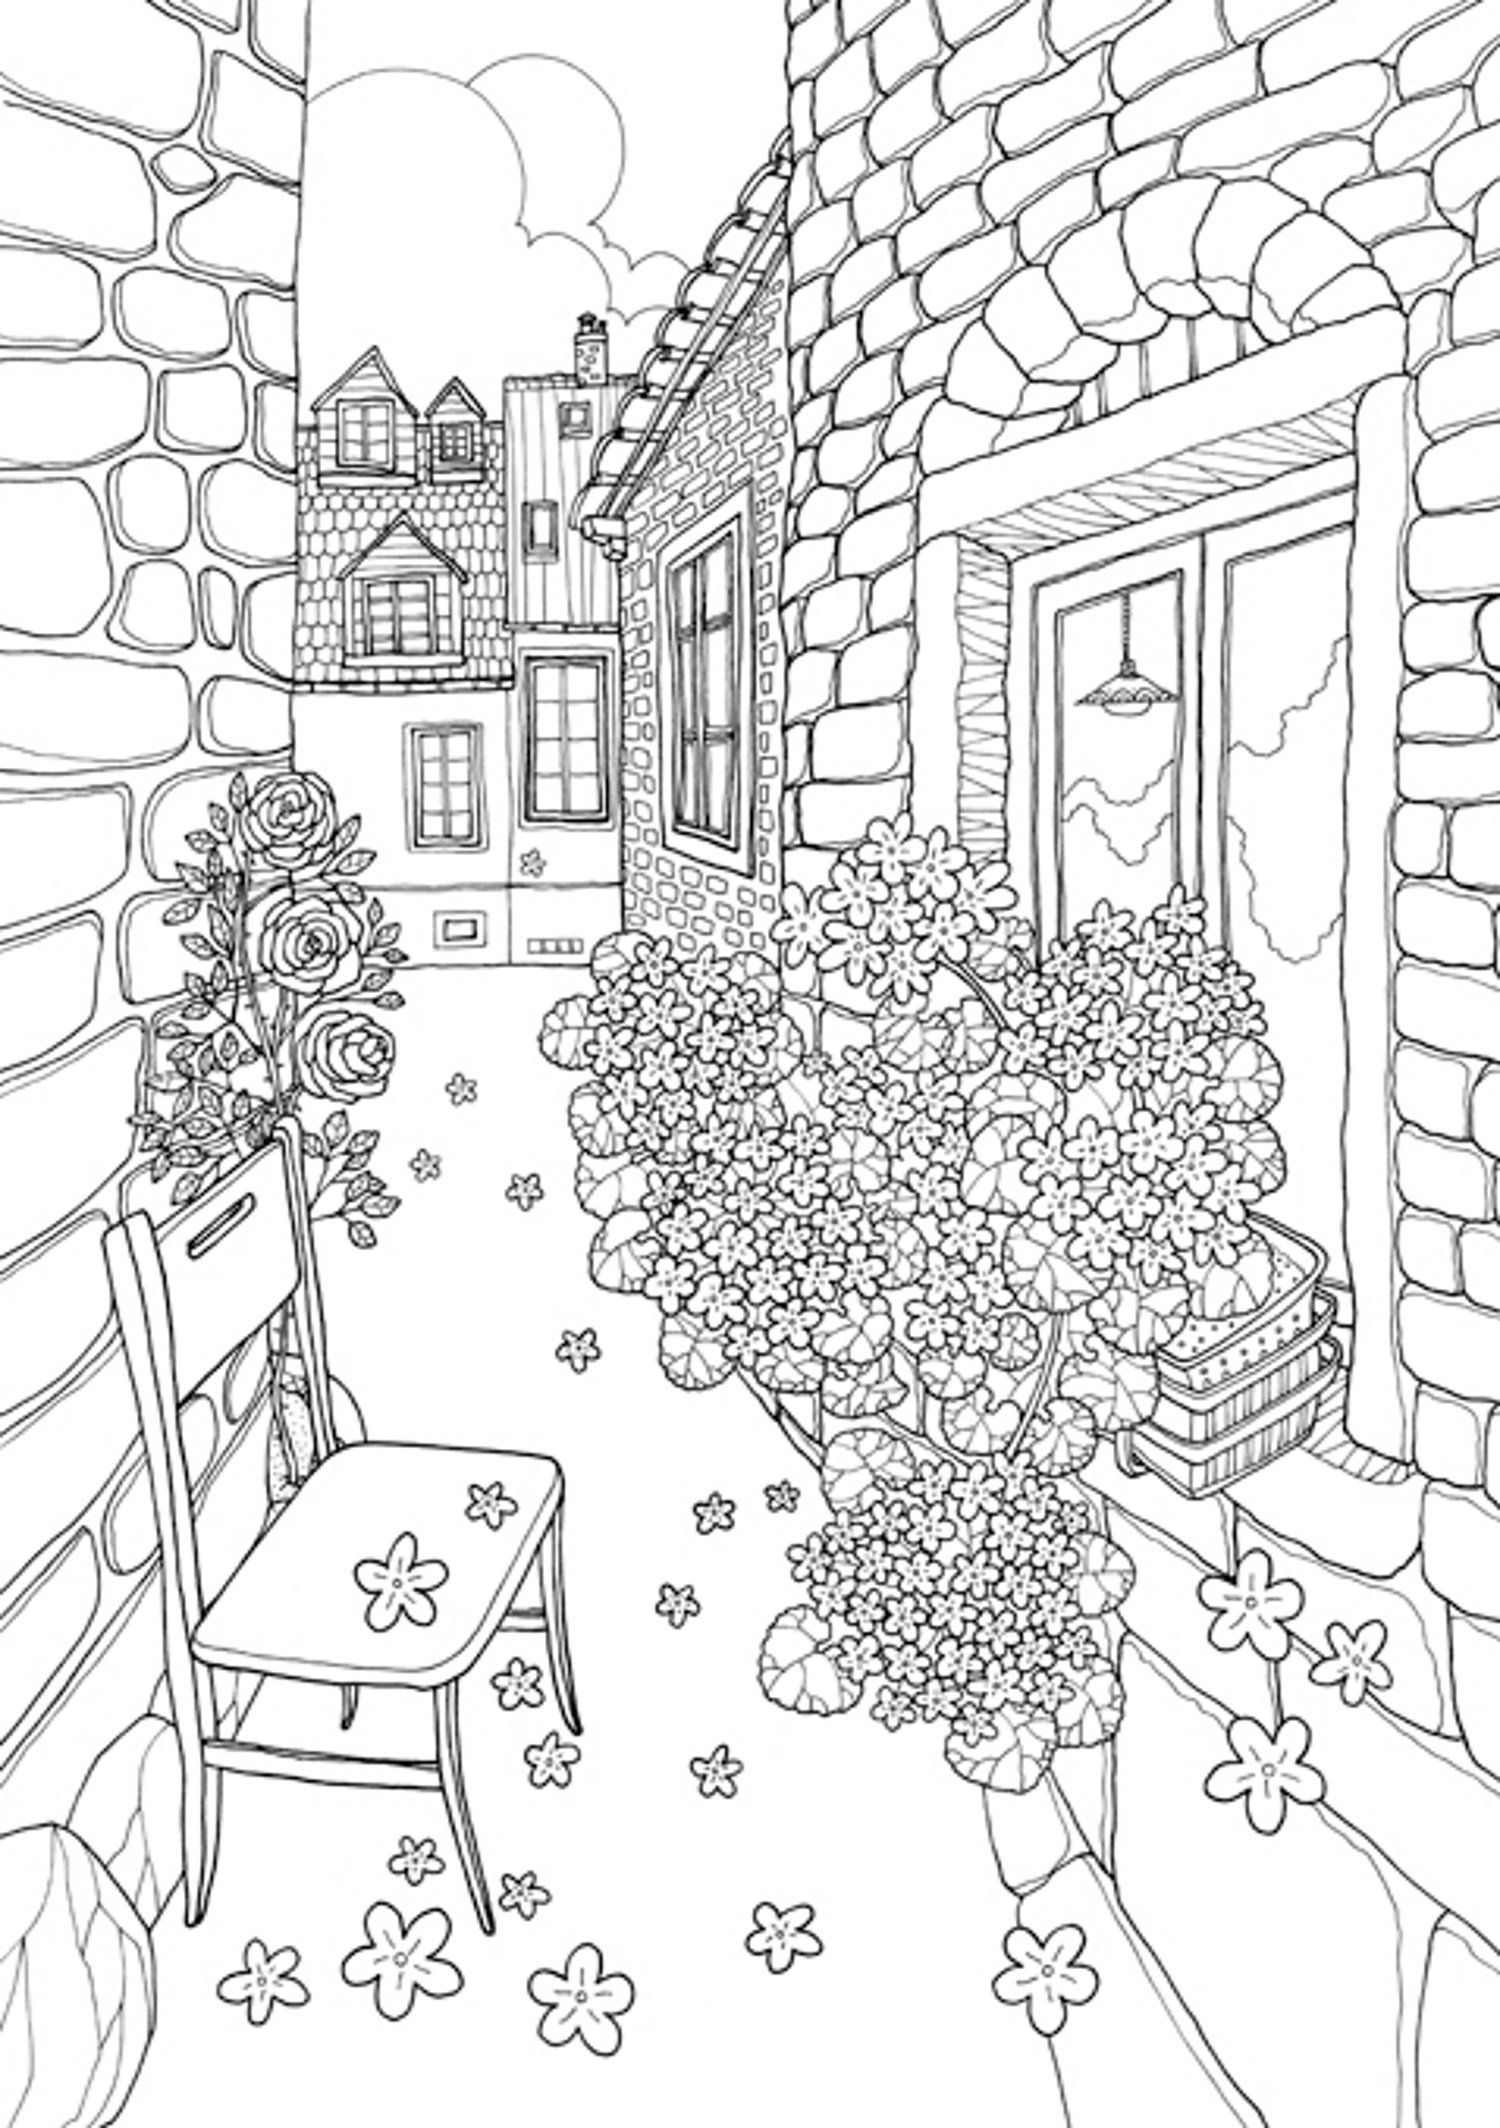 Coloring Europe Majestic Croatia A Coloring Book World Tour Of Old World Europe S Most Charming Locale Il Coloring Book Pages Coloring Books Coloring Pages